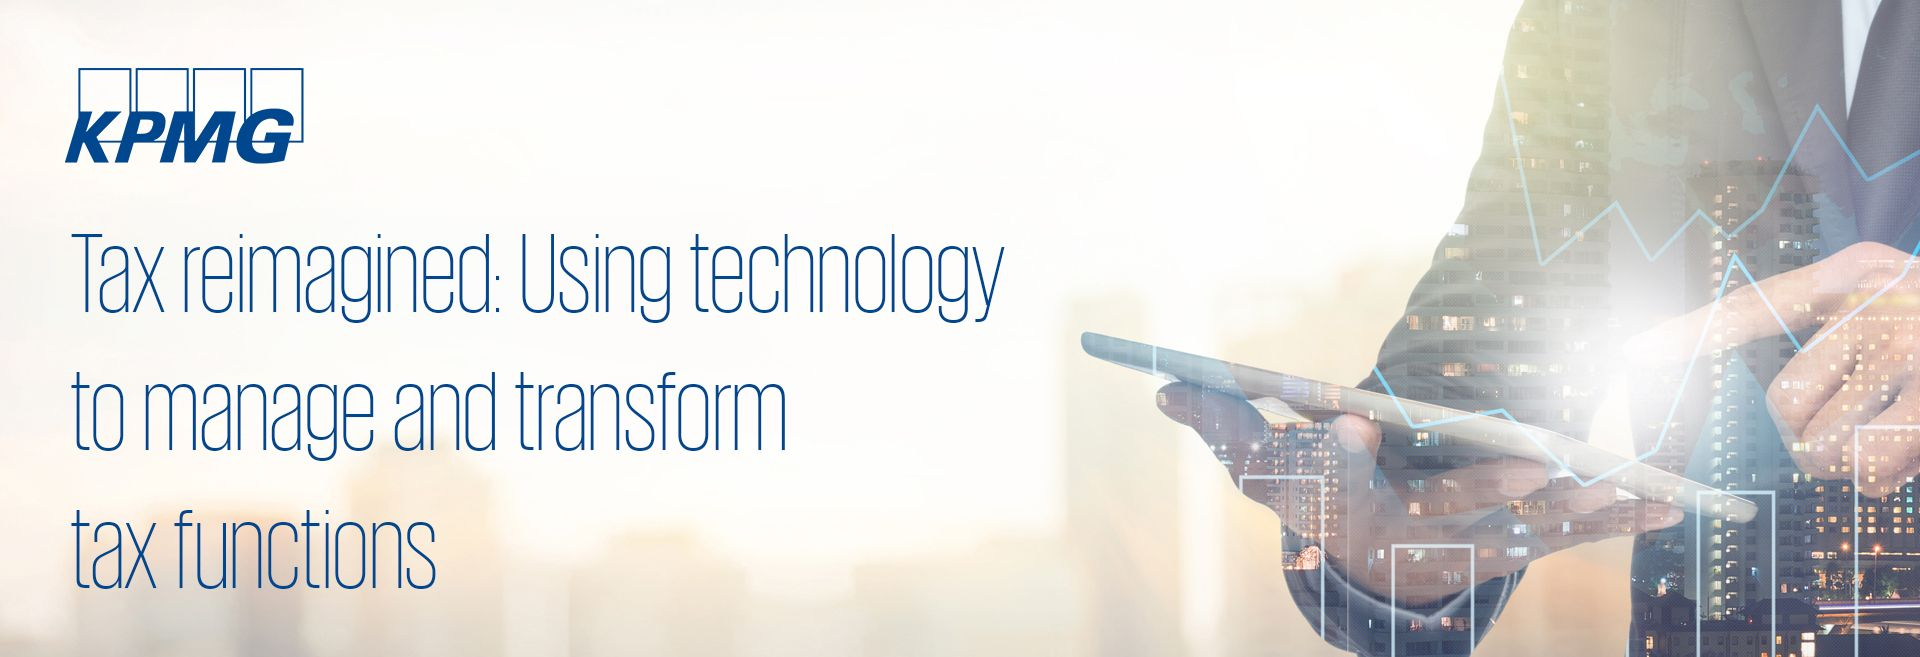 Tax reimagined: Using technology to manage and transform tax functions